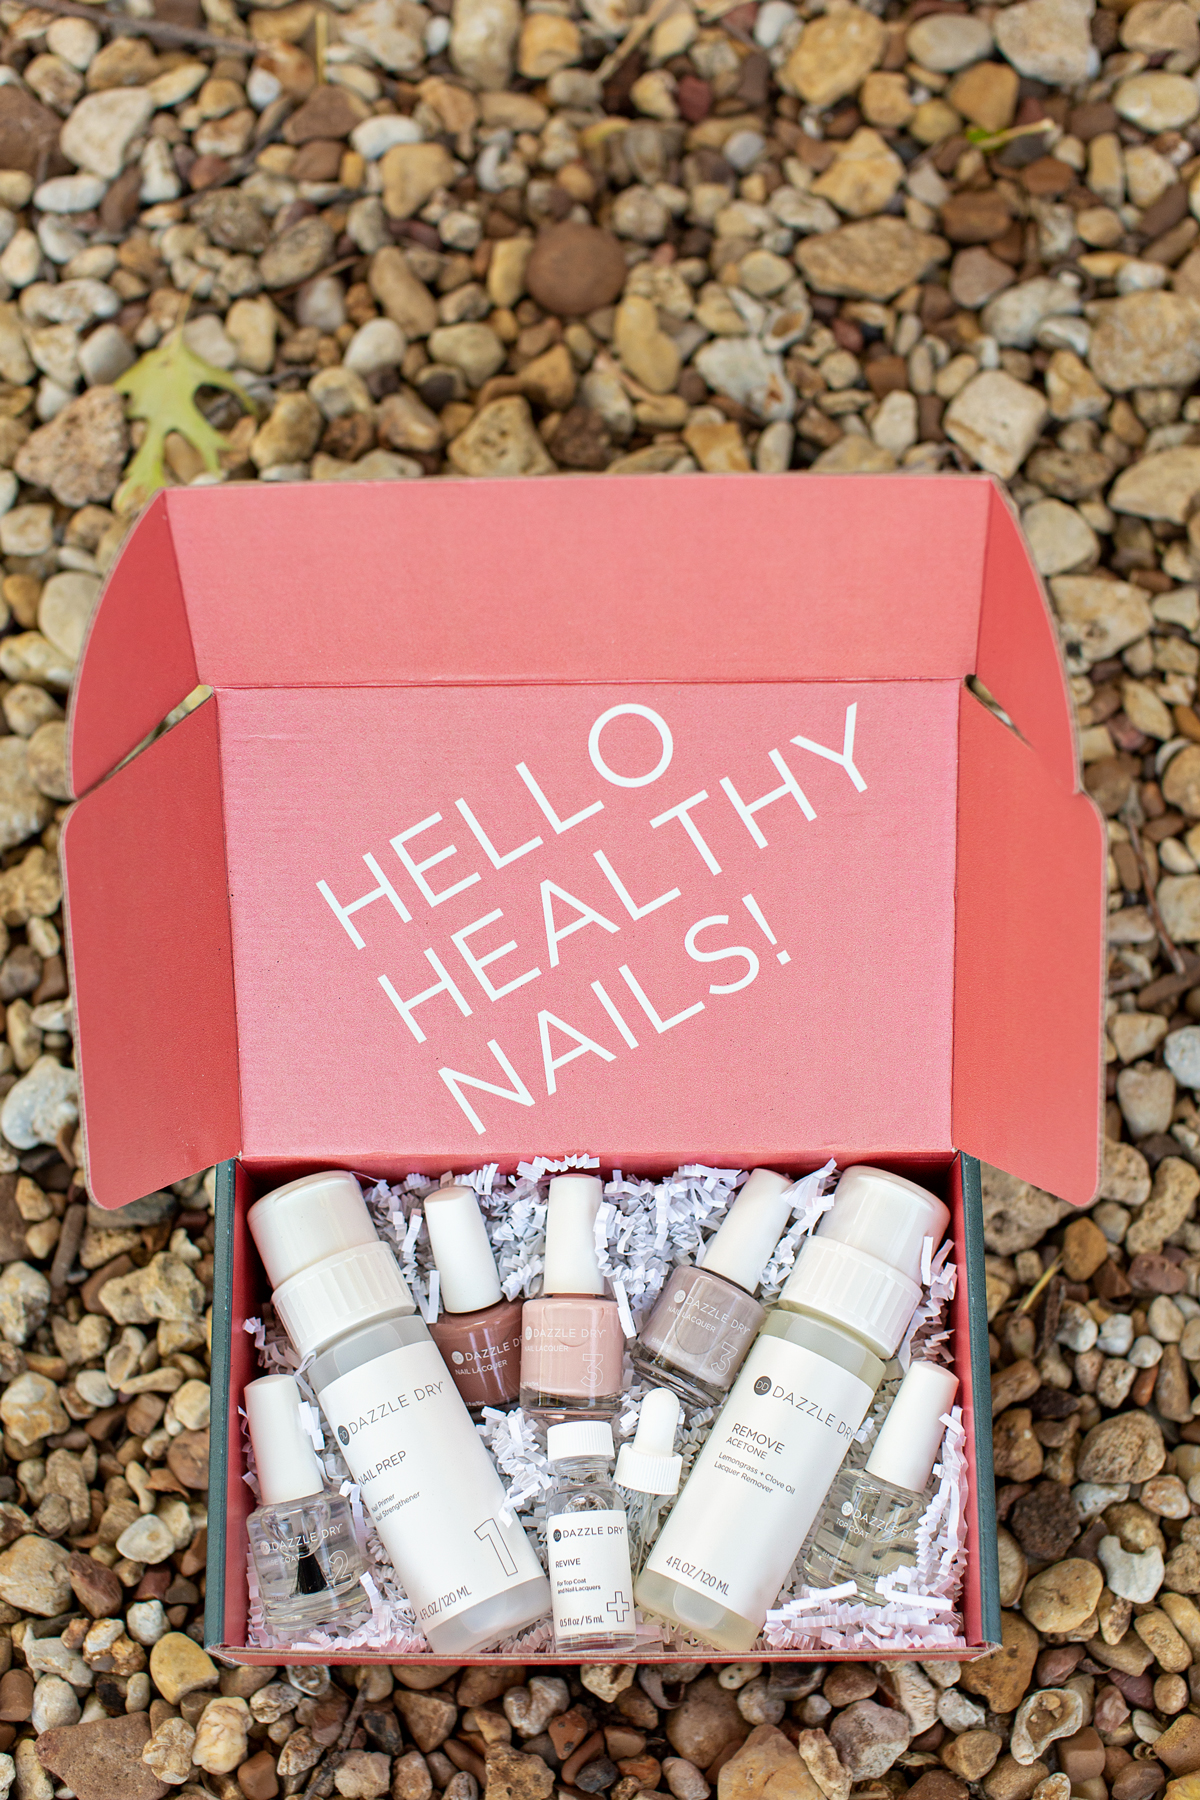 dazzle dry nail products in a box